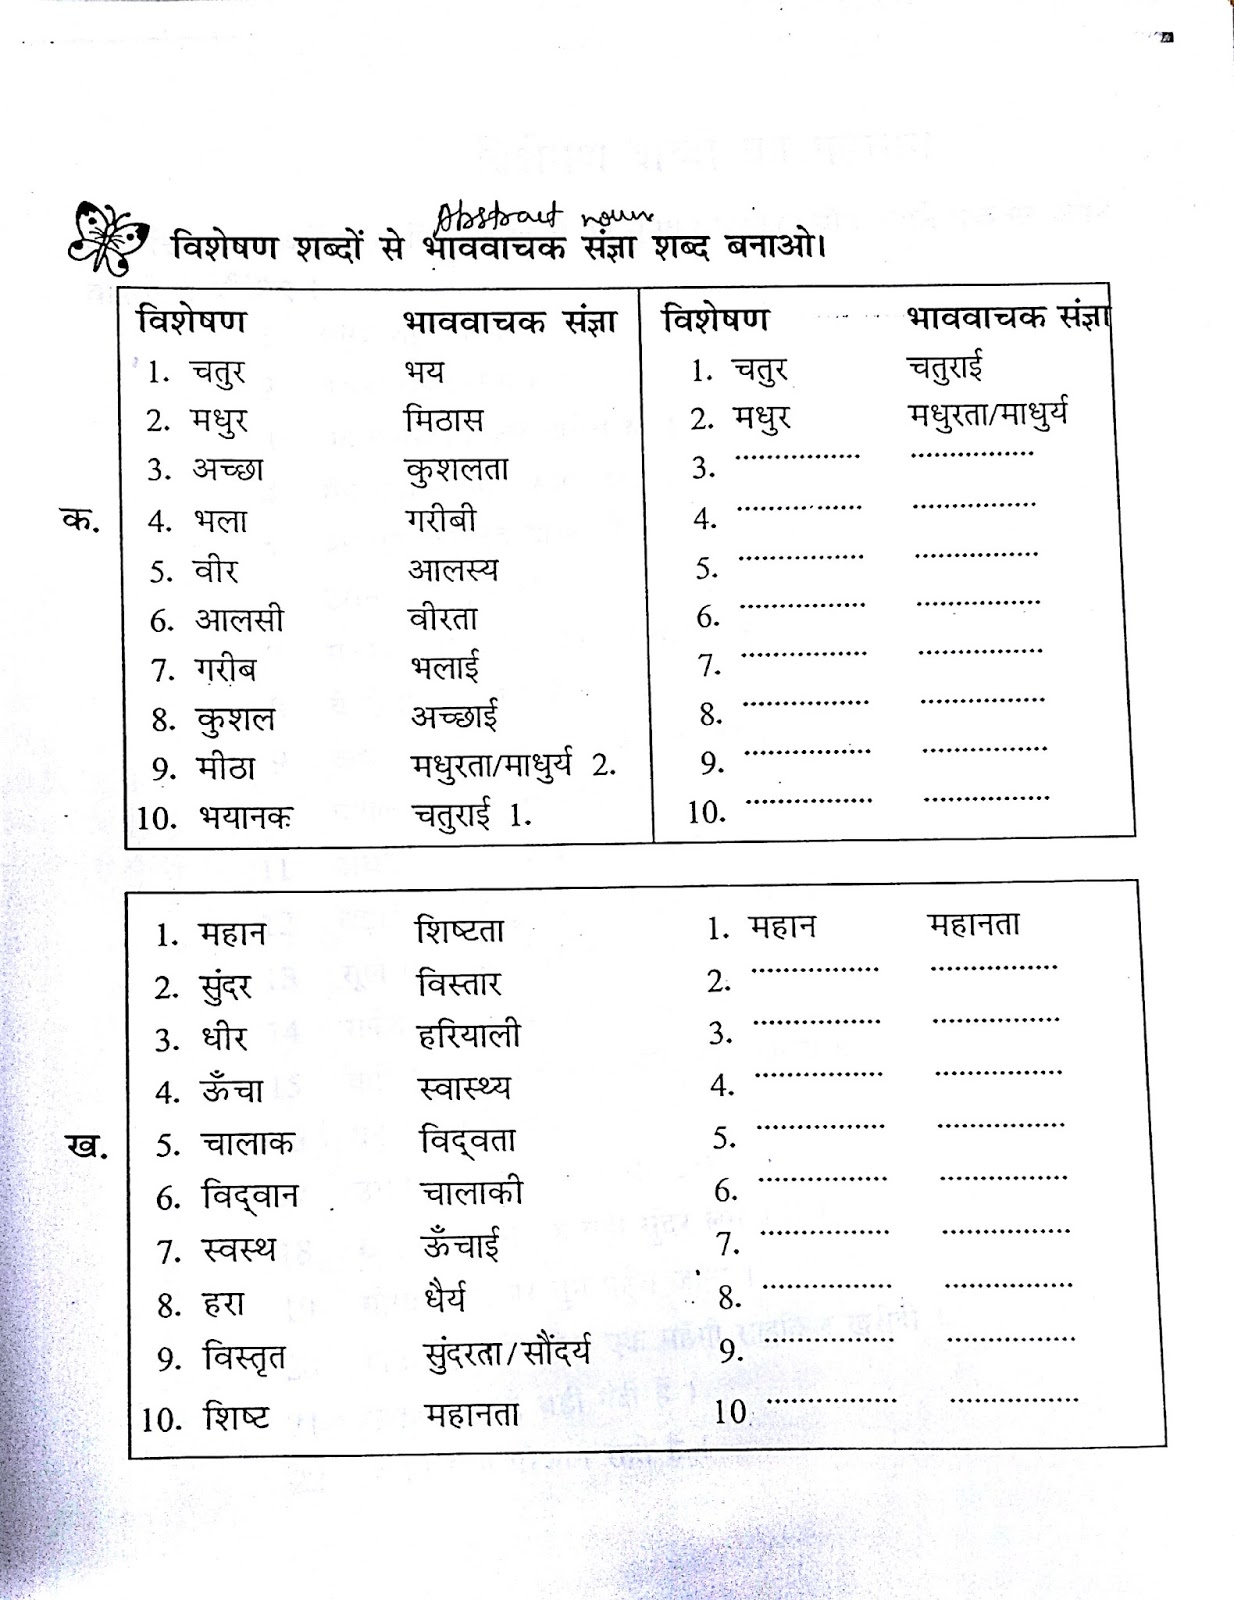 Hindi Grammar Work Sheet Collection For Classes 5 6 7 Amp 8 Noun Work Sheets For Classes 3 4 5